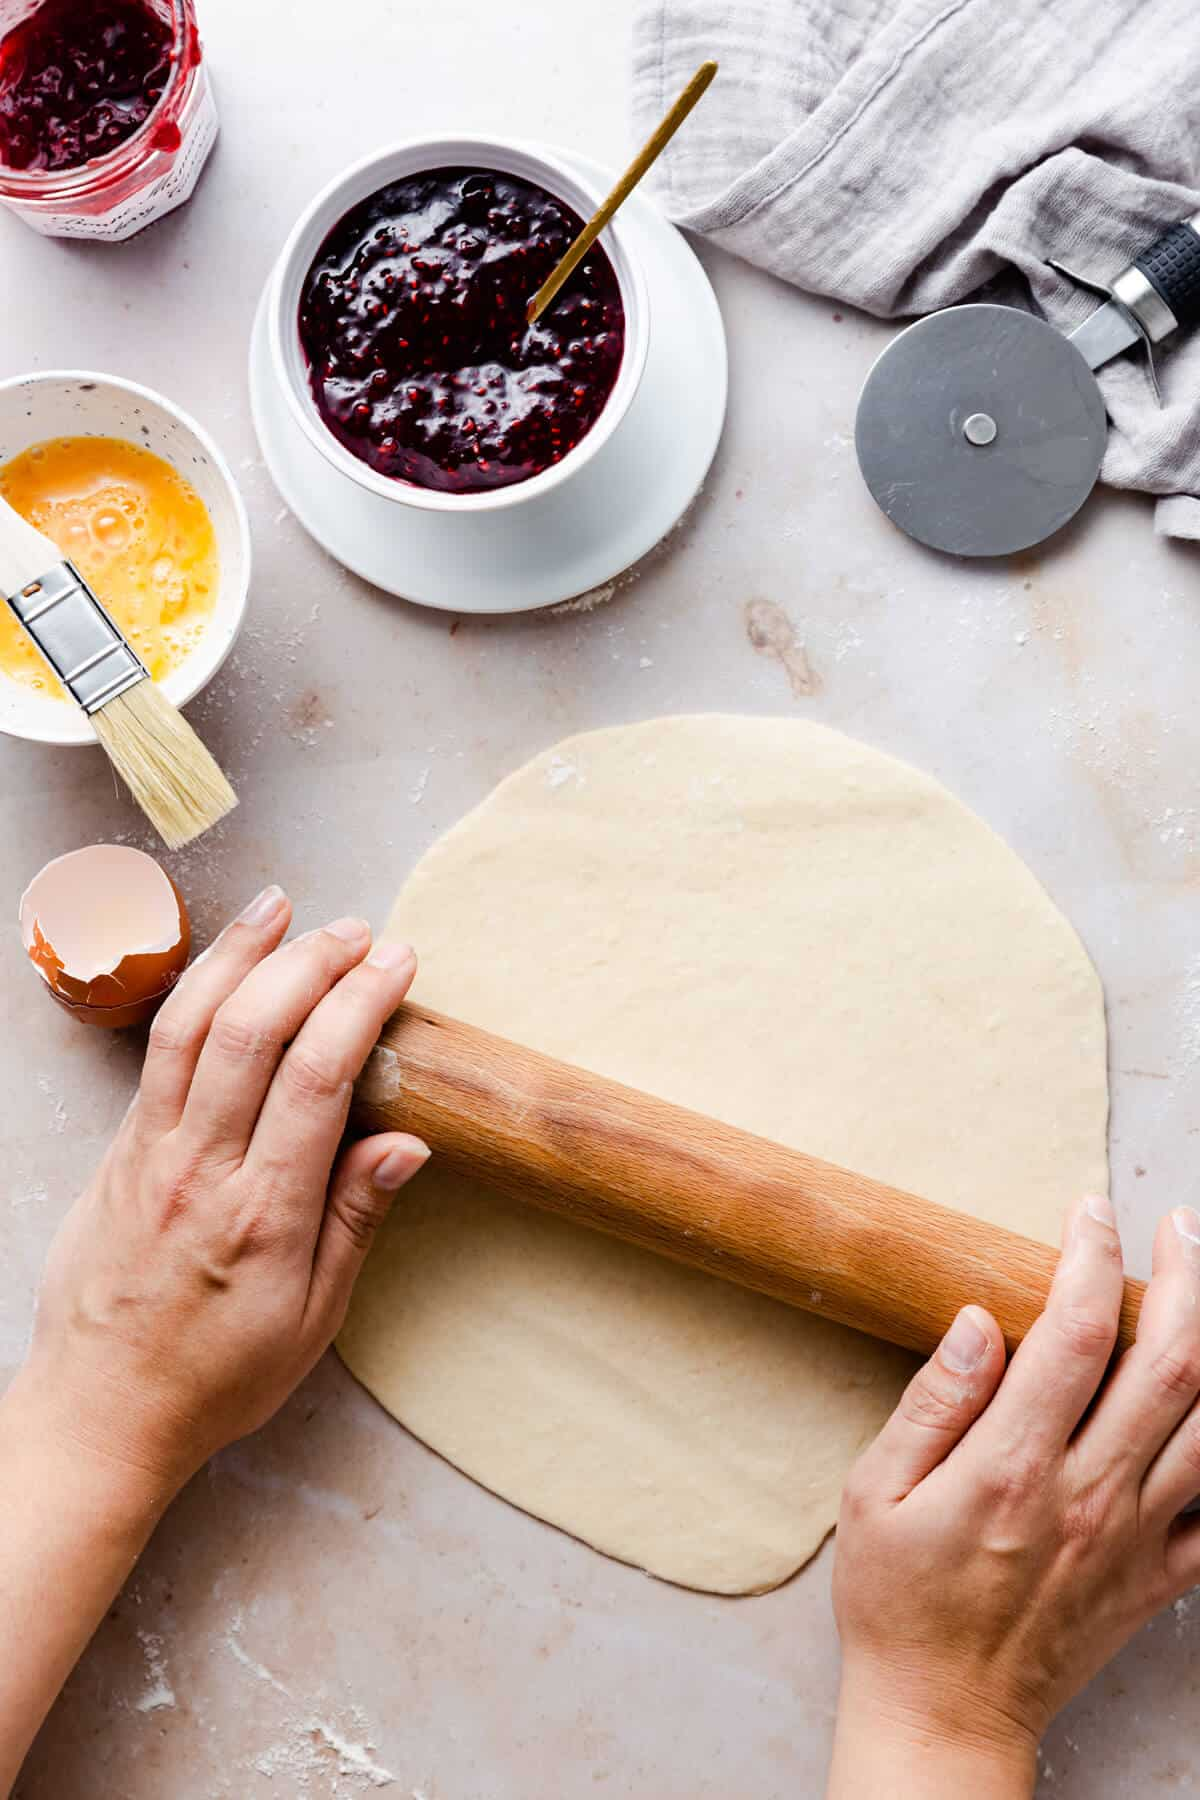 top view of a person rolling the dough into circle with wooden rolling pin